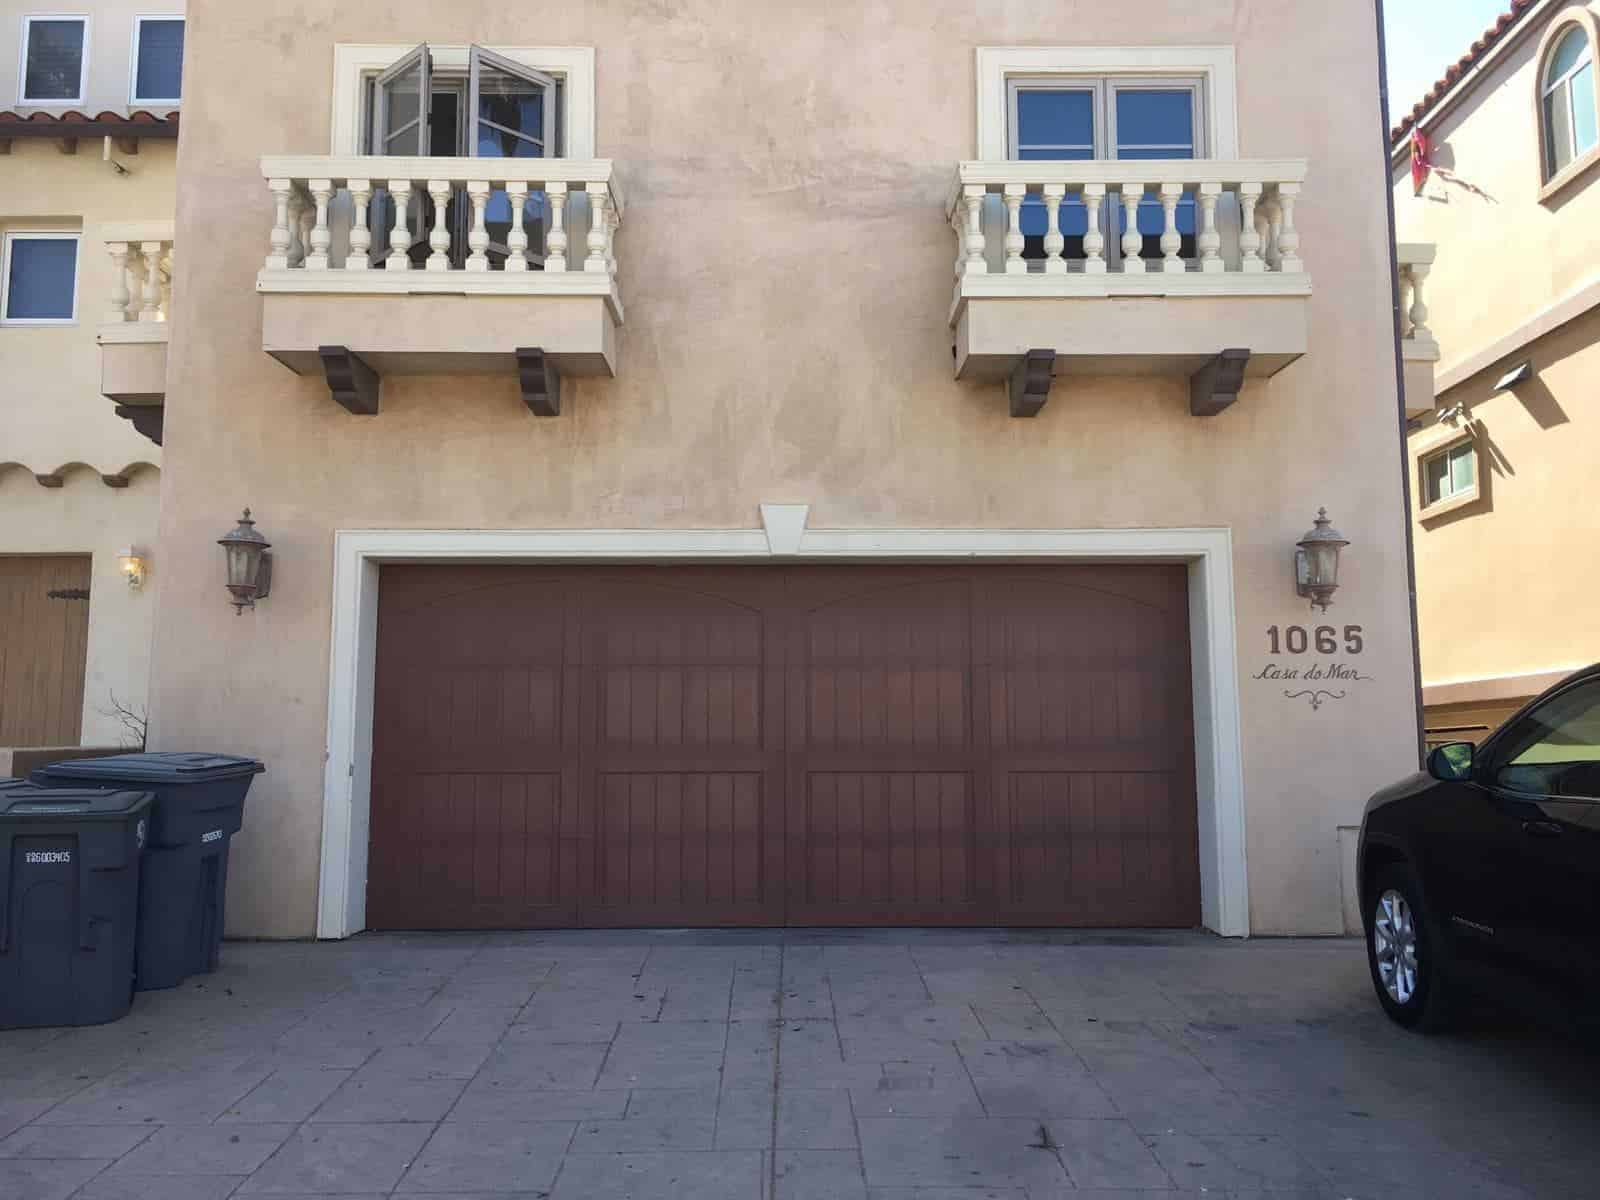 French Camp Garage door repair and replacement